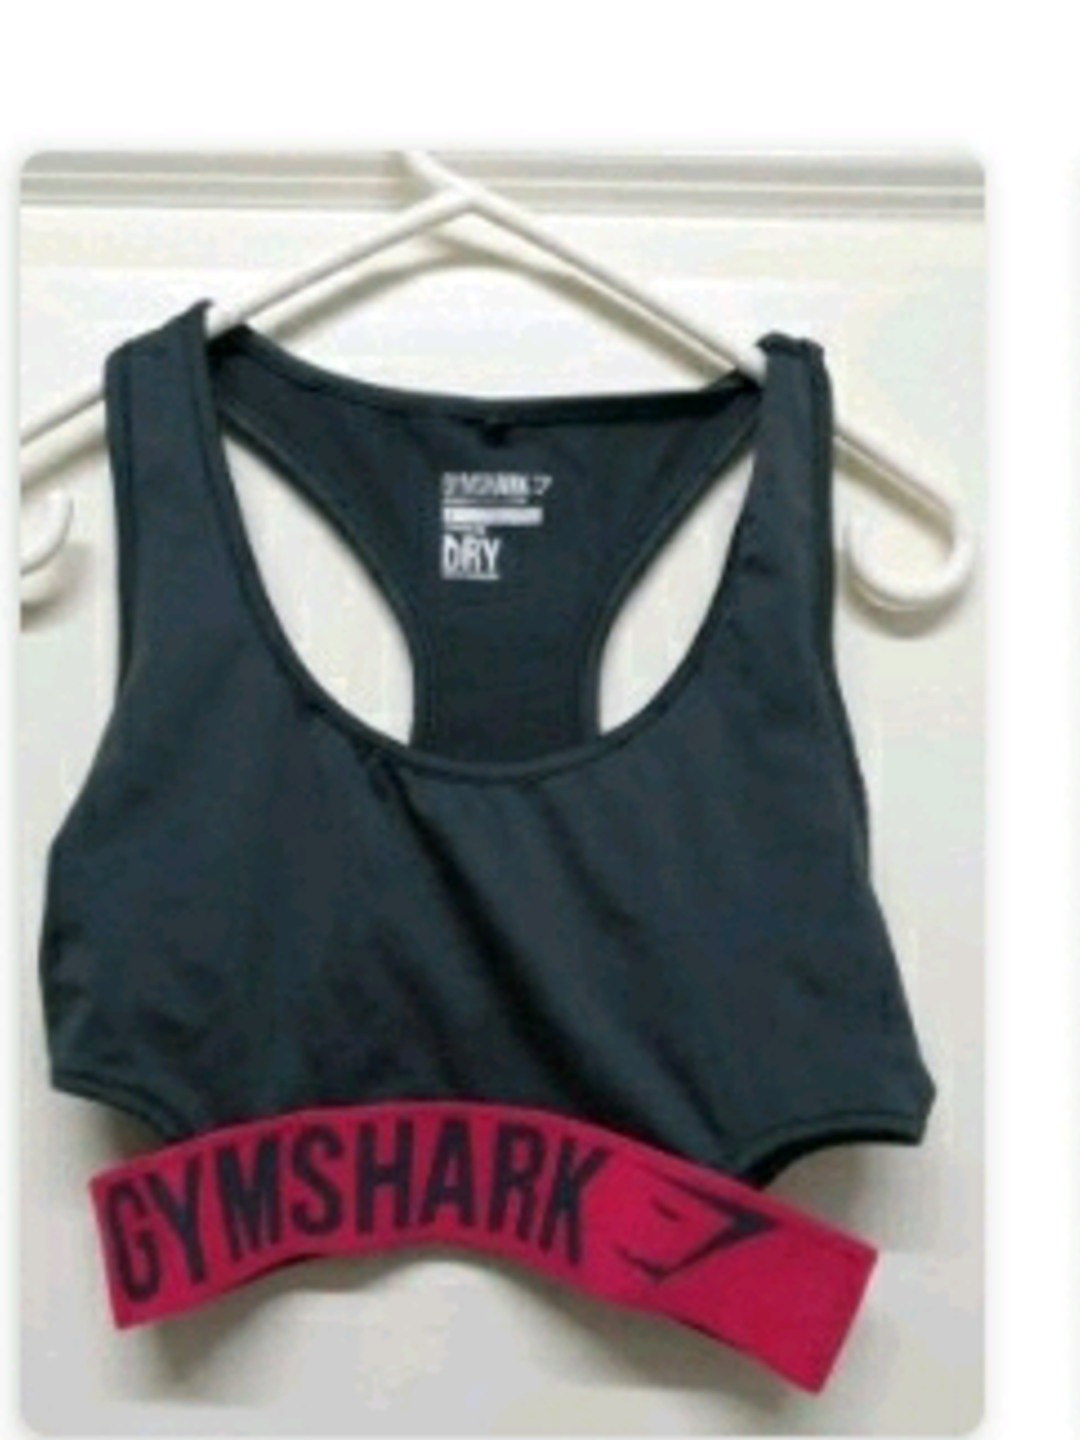 Women's sportswear - GYMSHARK photo 1